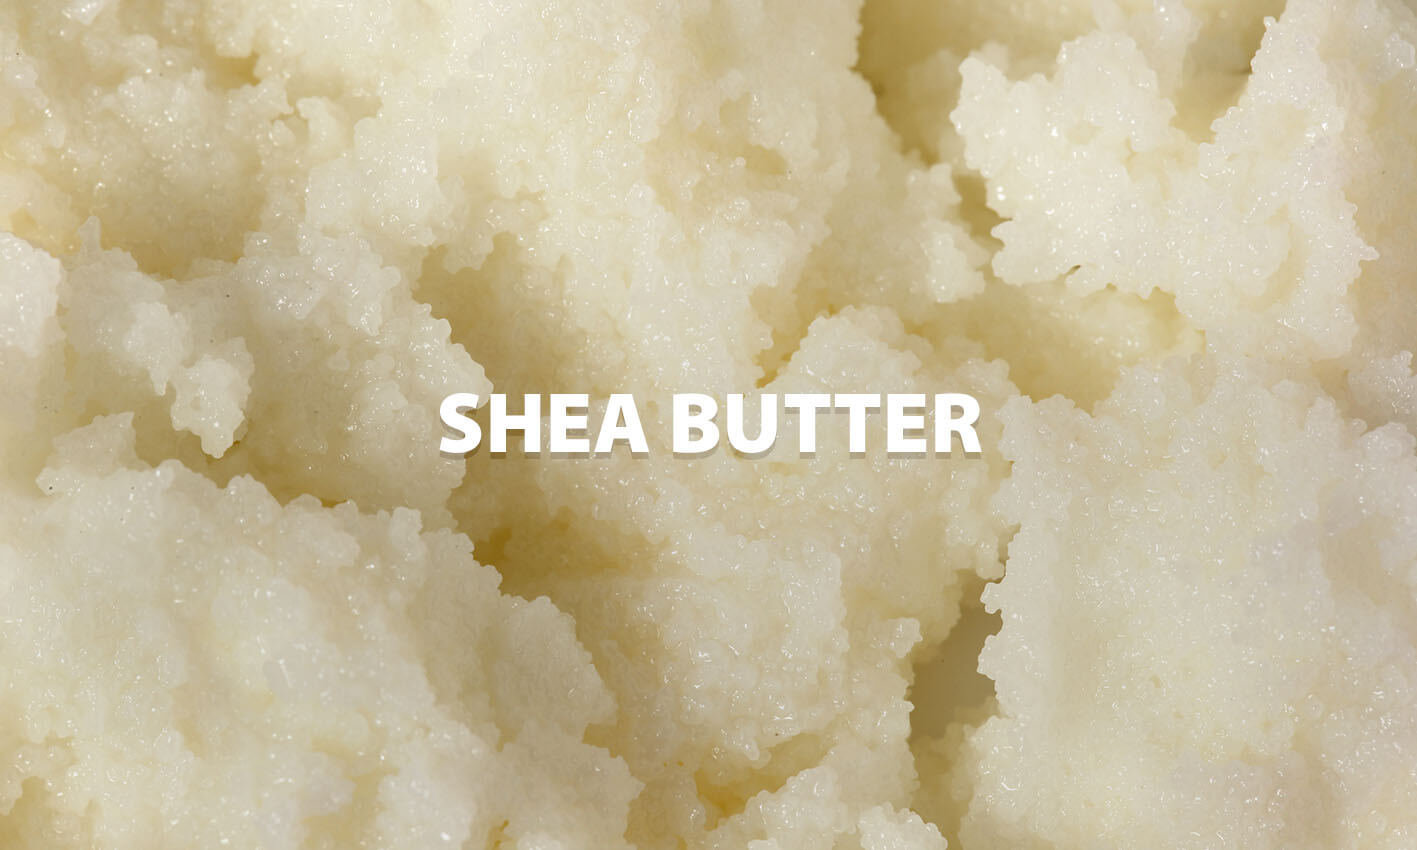 Wonders of Shea Butter